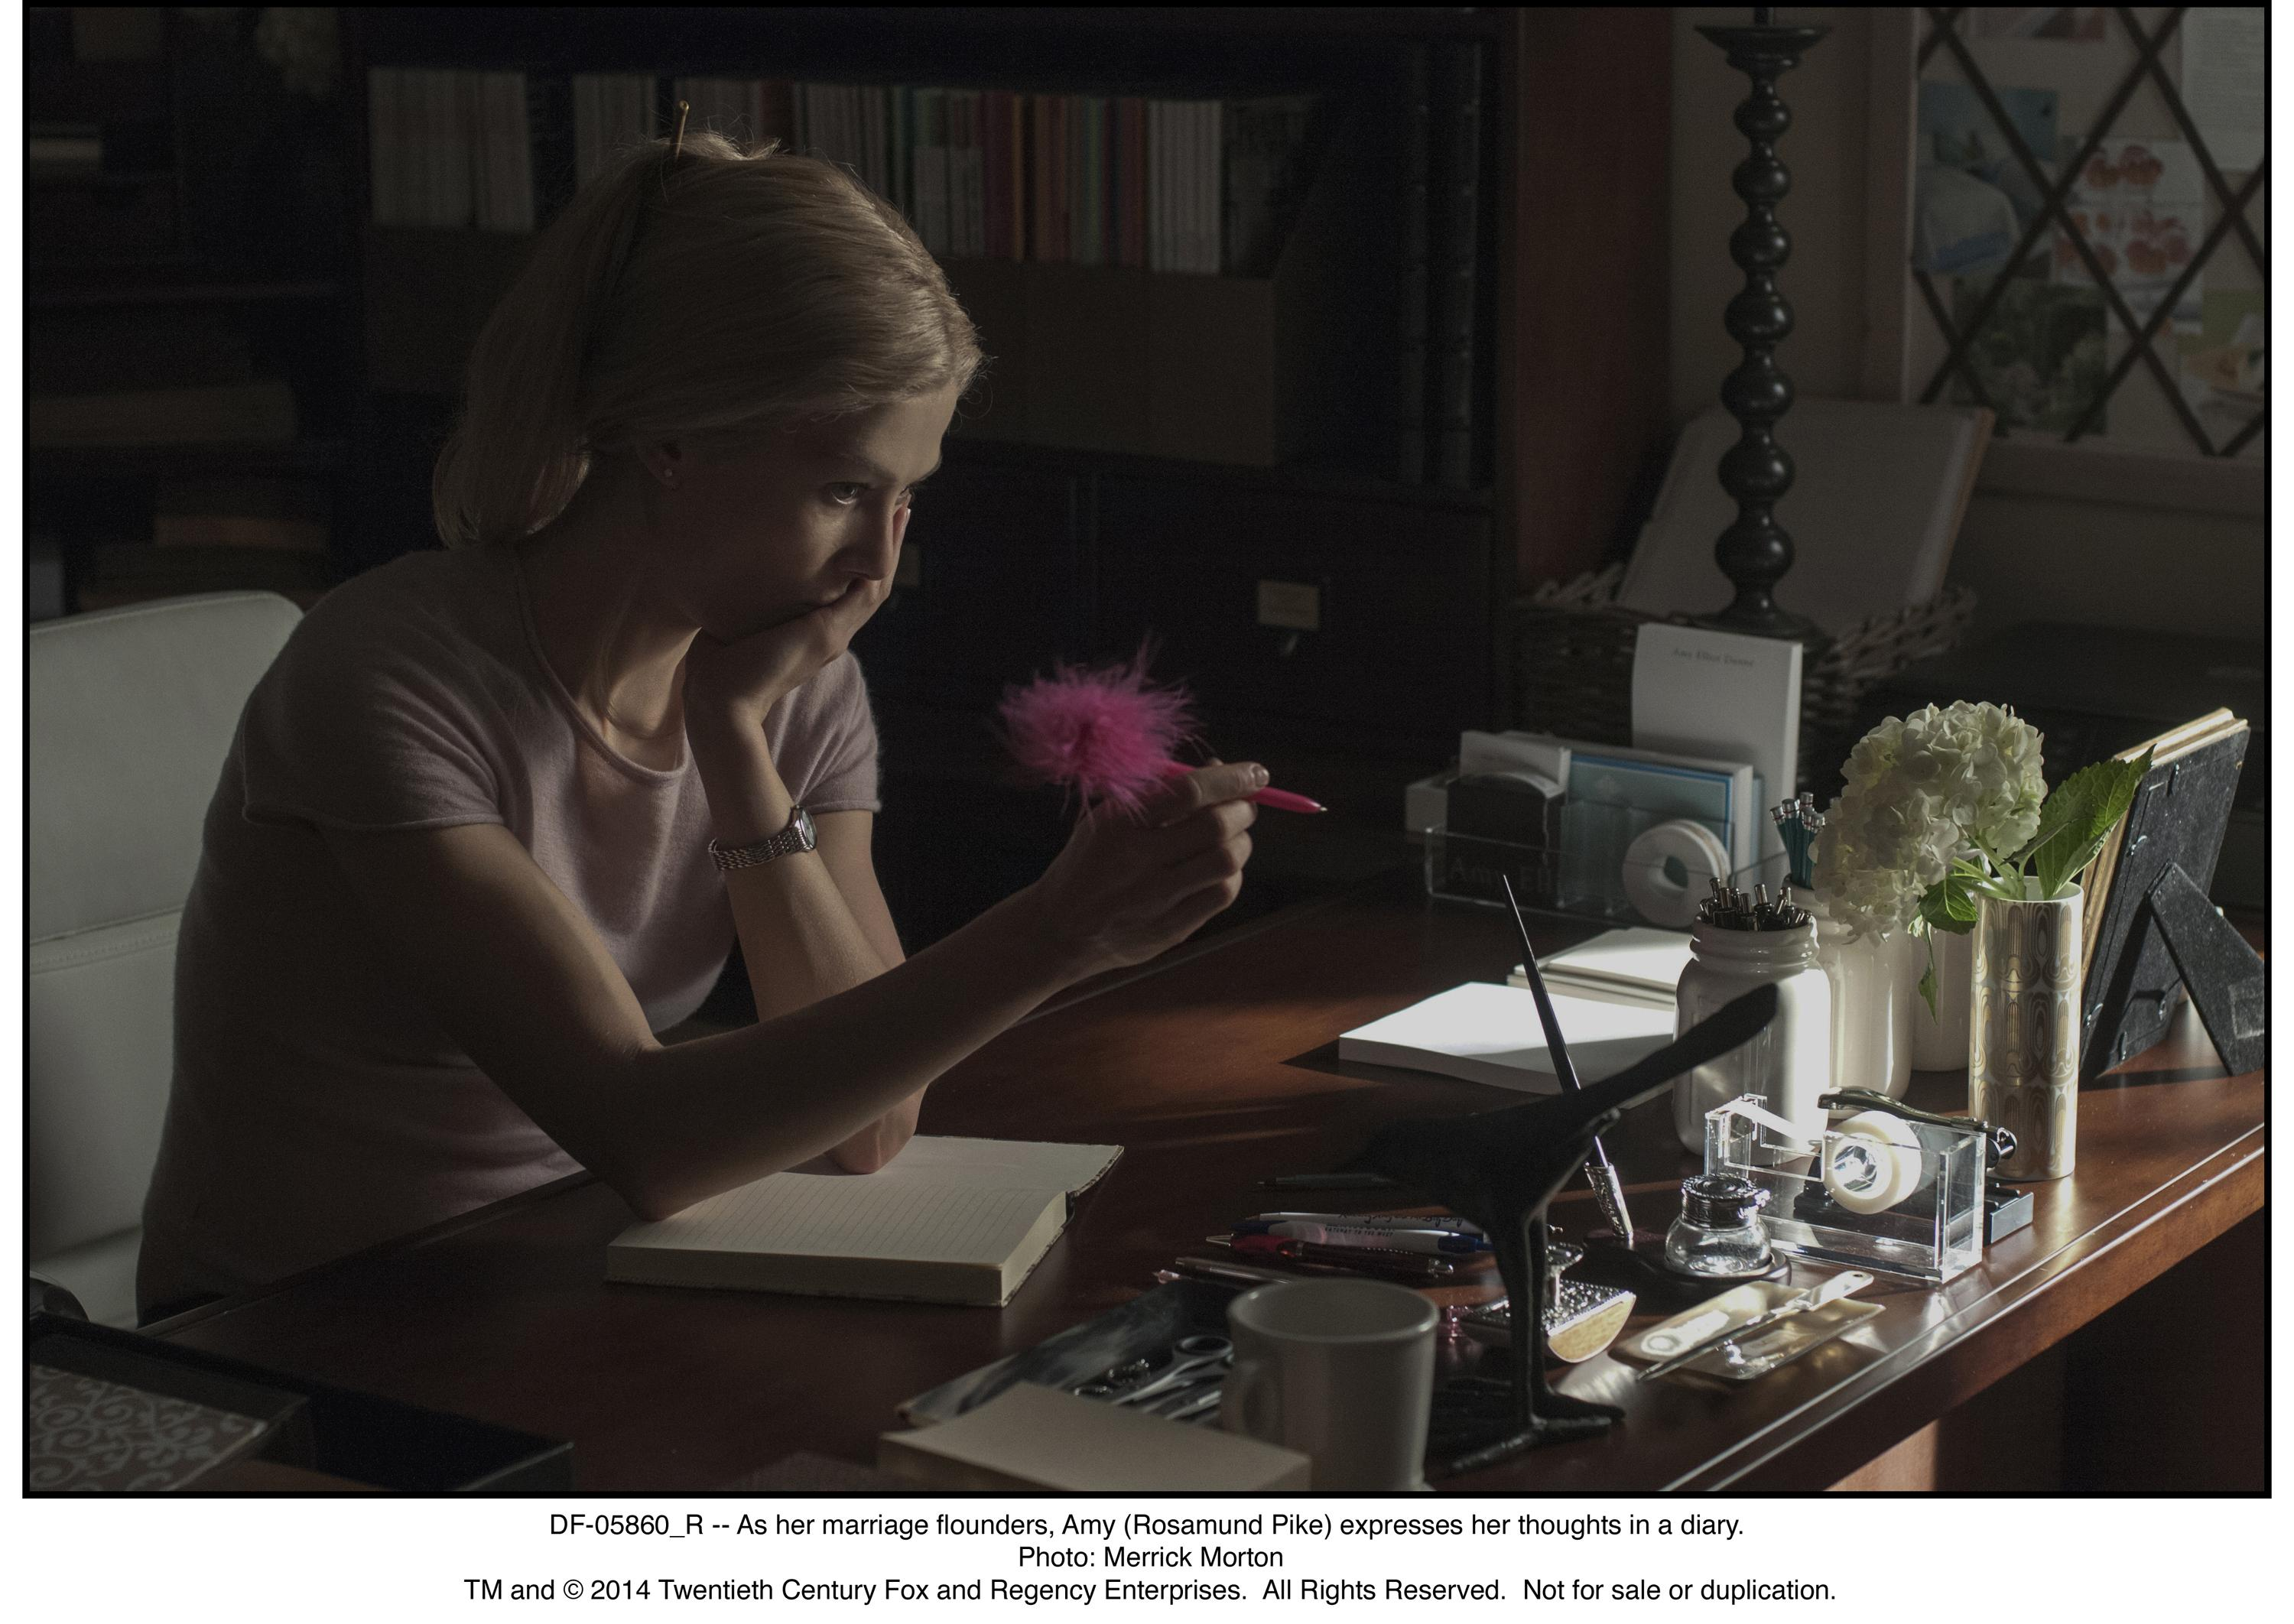 Mill Valley, 'Gone Girl,' and TWO flicks featuring Satan: yep, must be time for new movies!